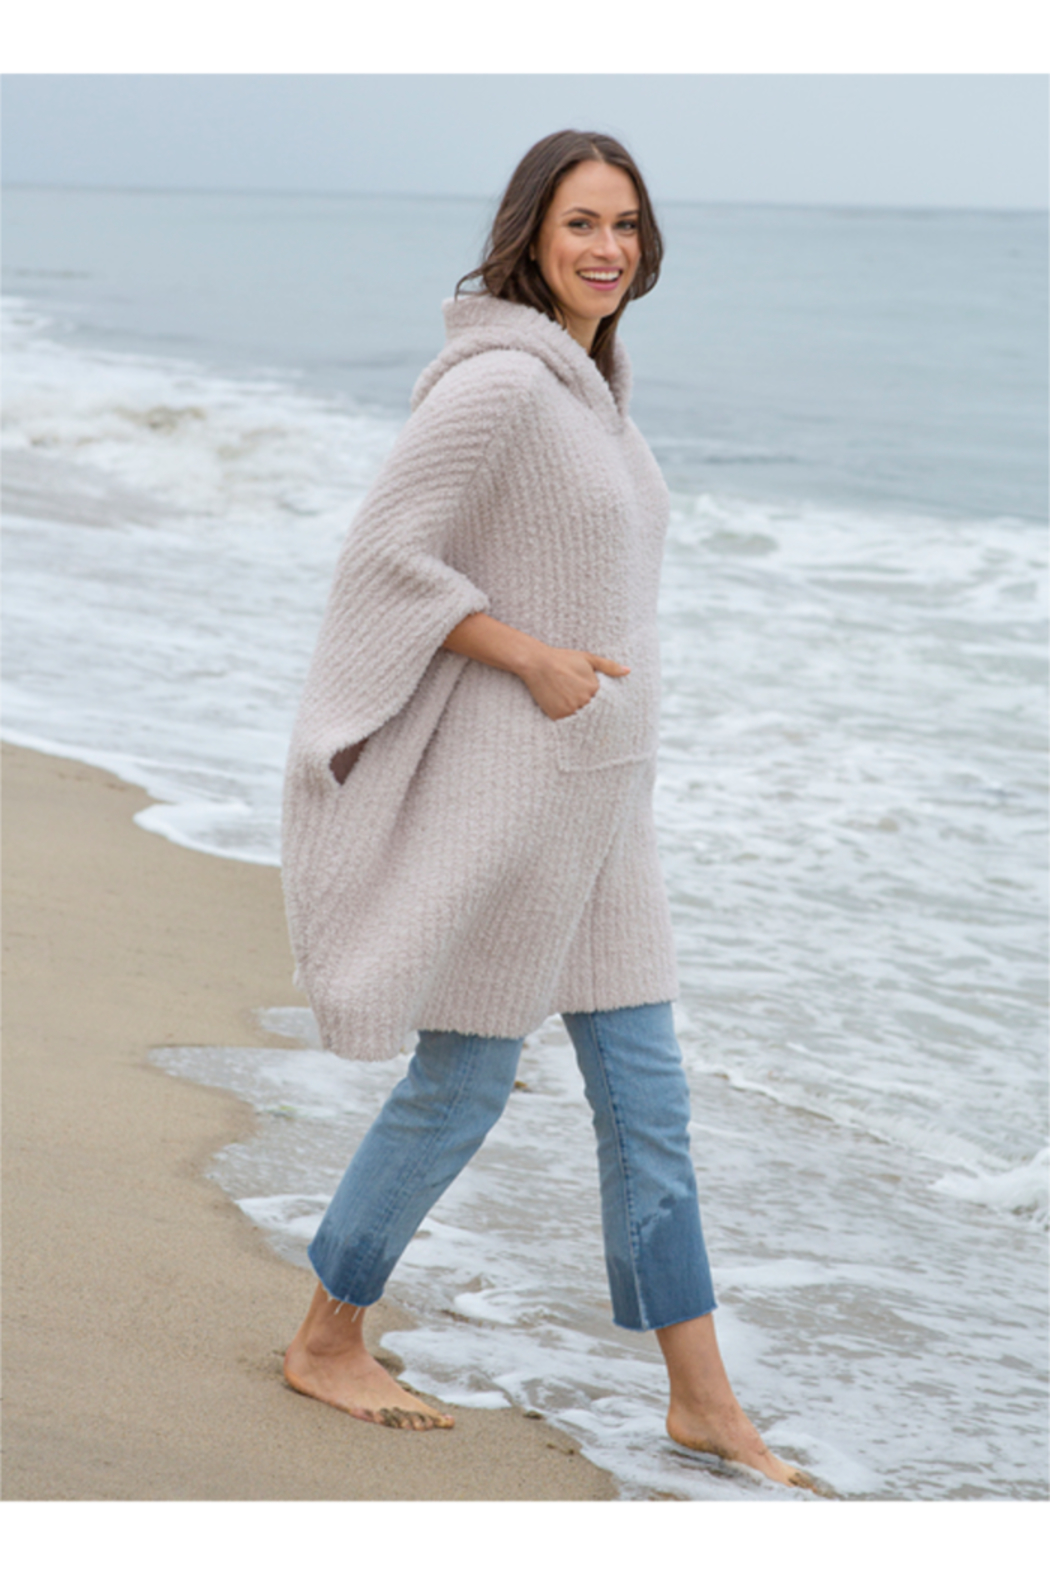 The Birds Nest COZYCHIC THE RIBBED COZY SWEATER -ALMOND - Main Image